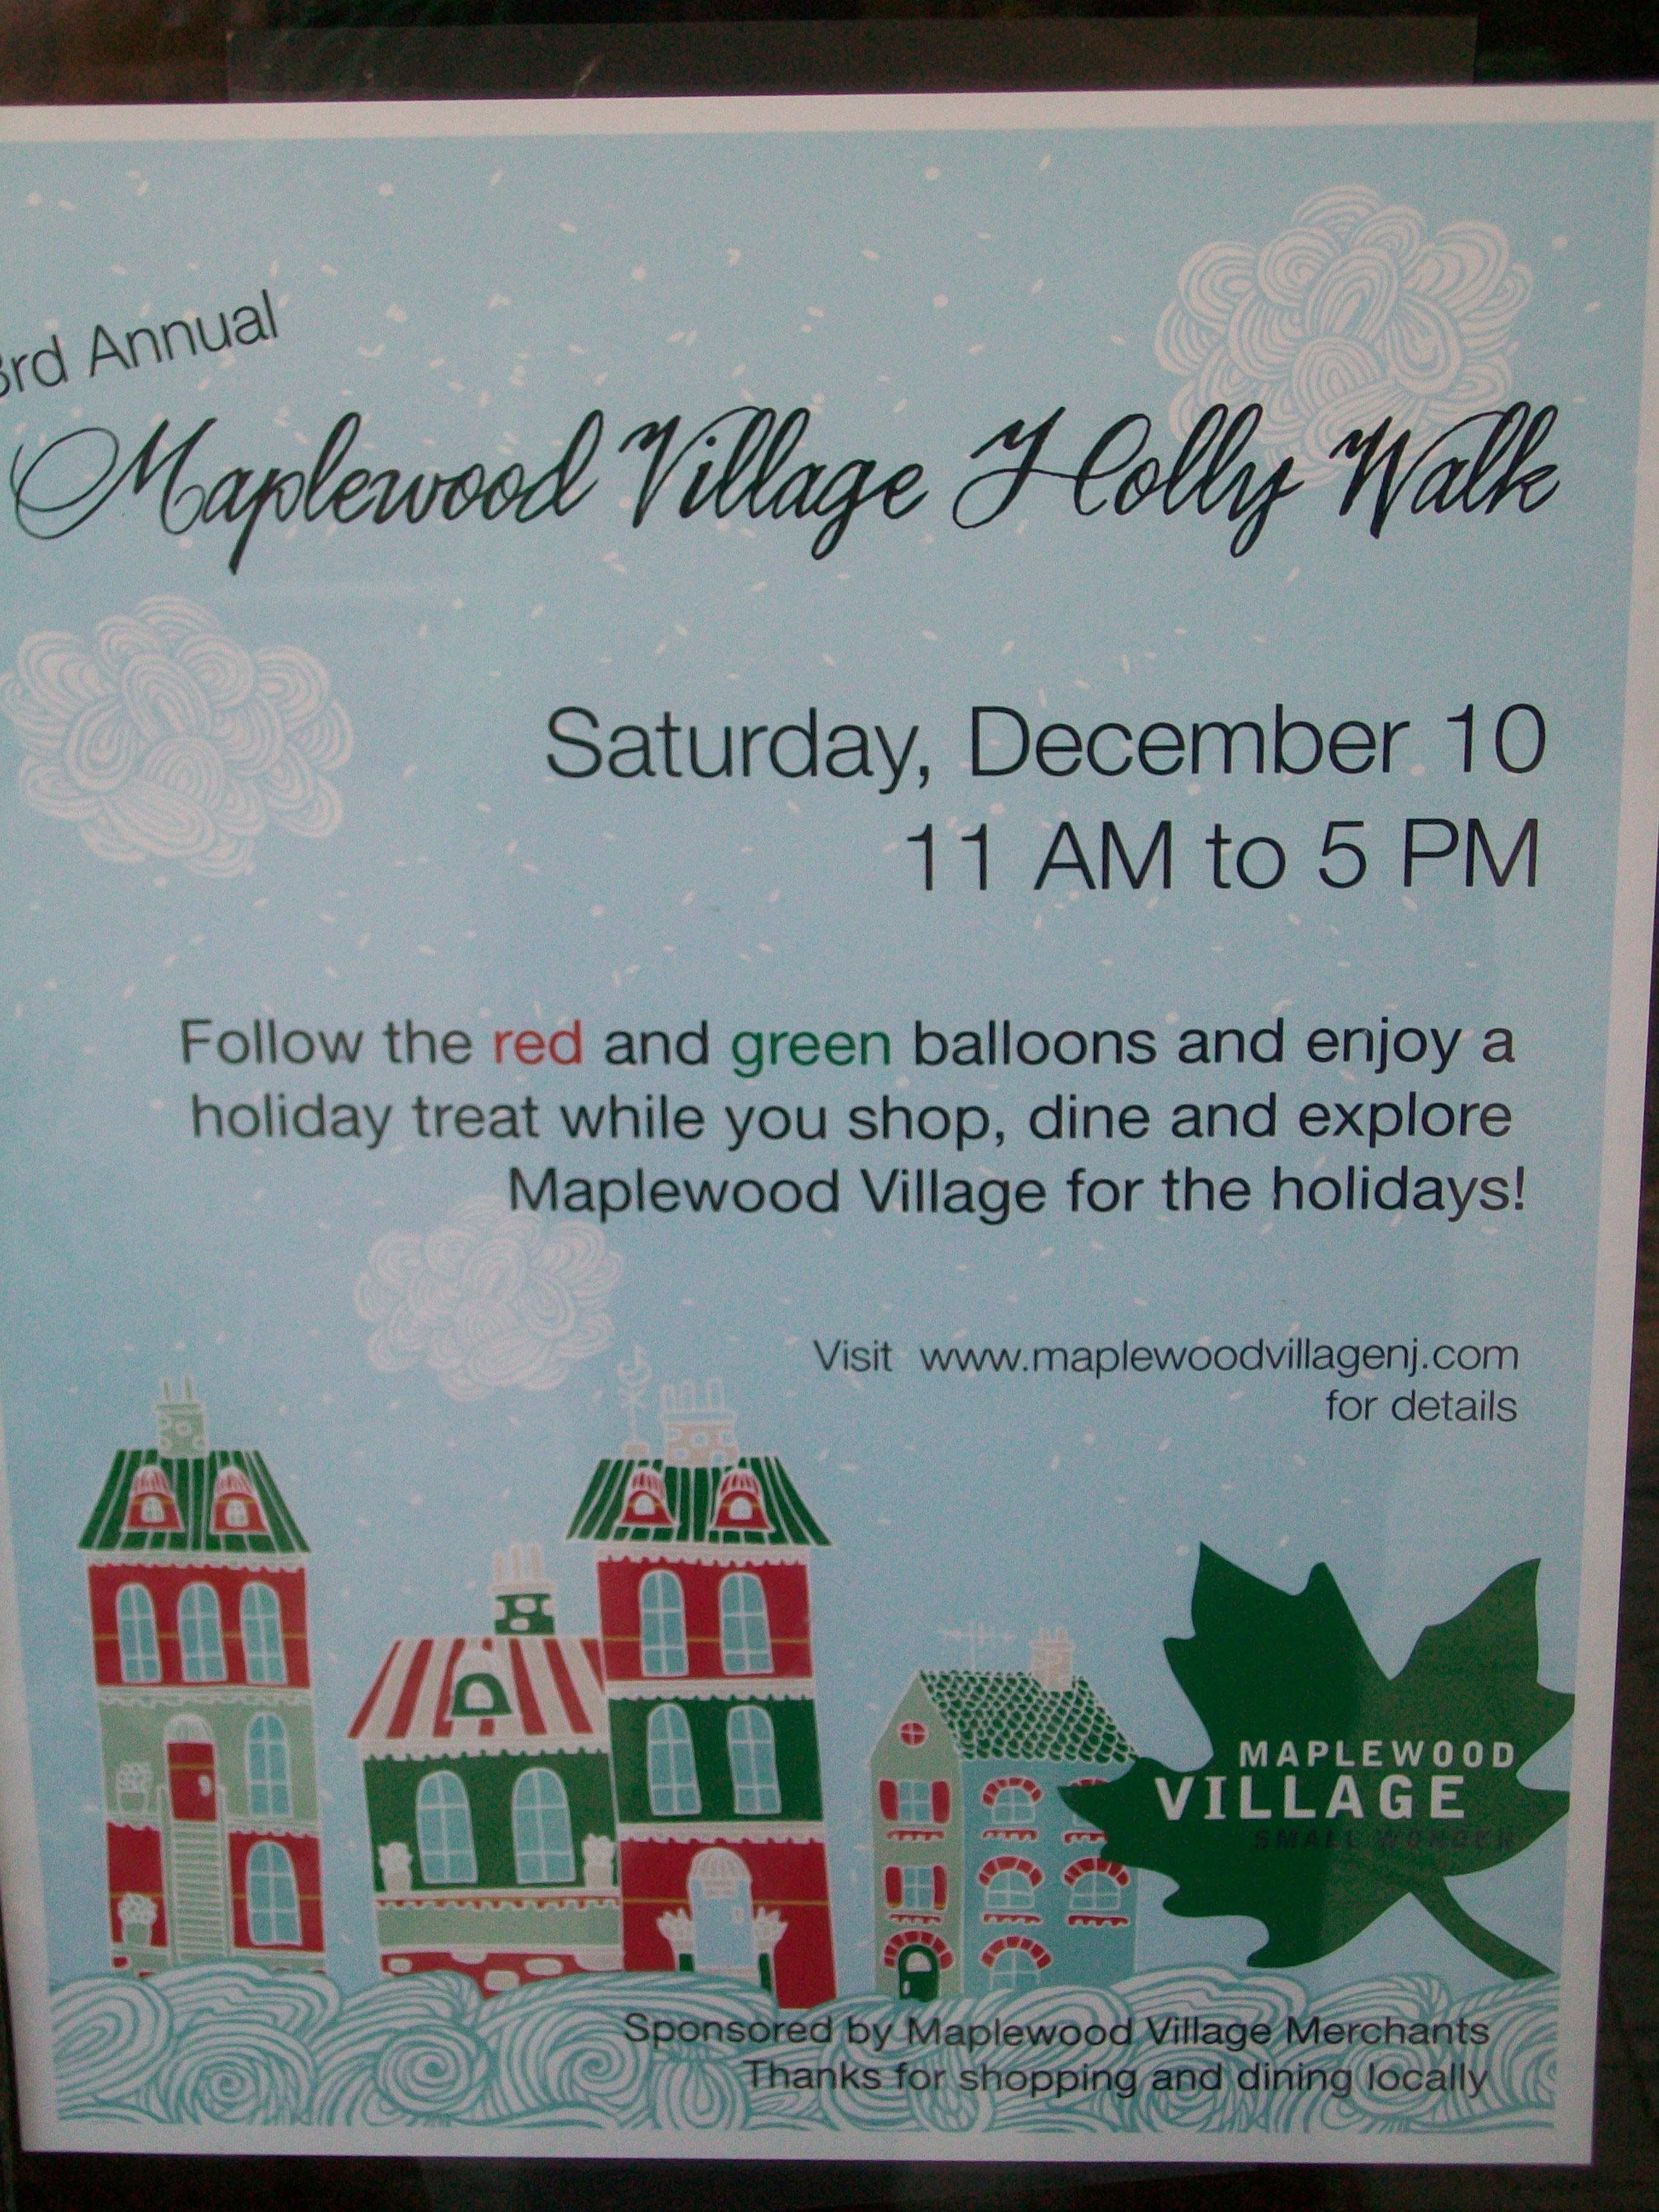 355dfa71c0de9ebea0d6_flyer_for_the_maplewood_village_holly_walk.jpg